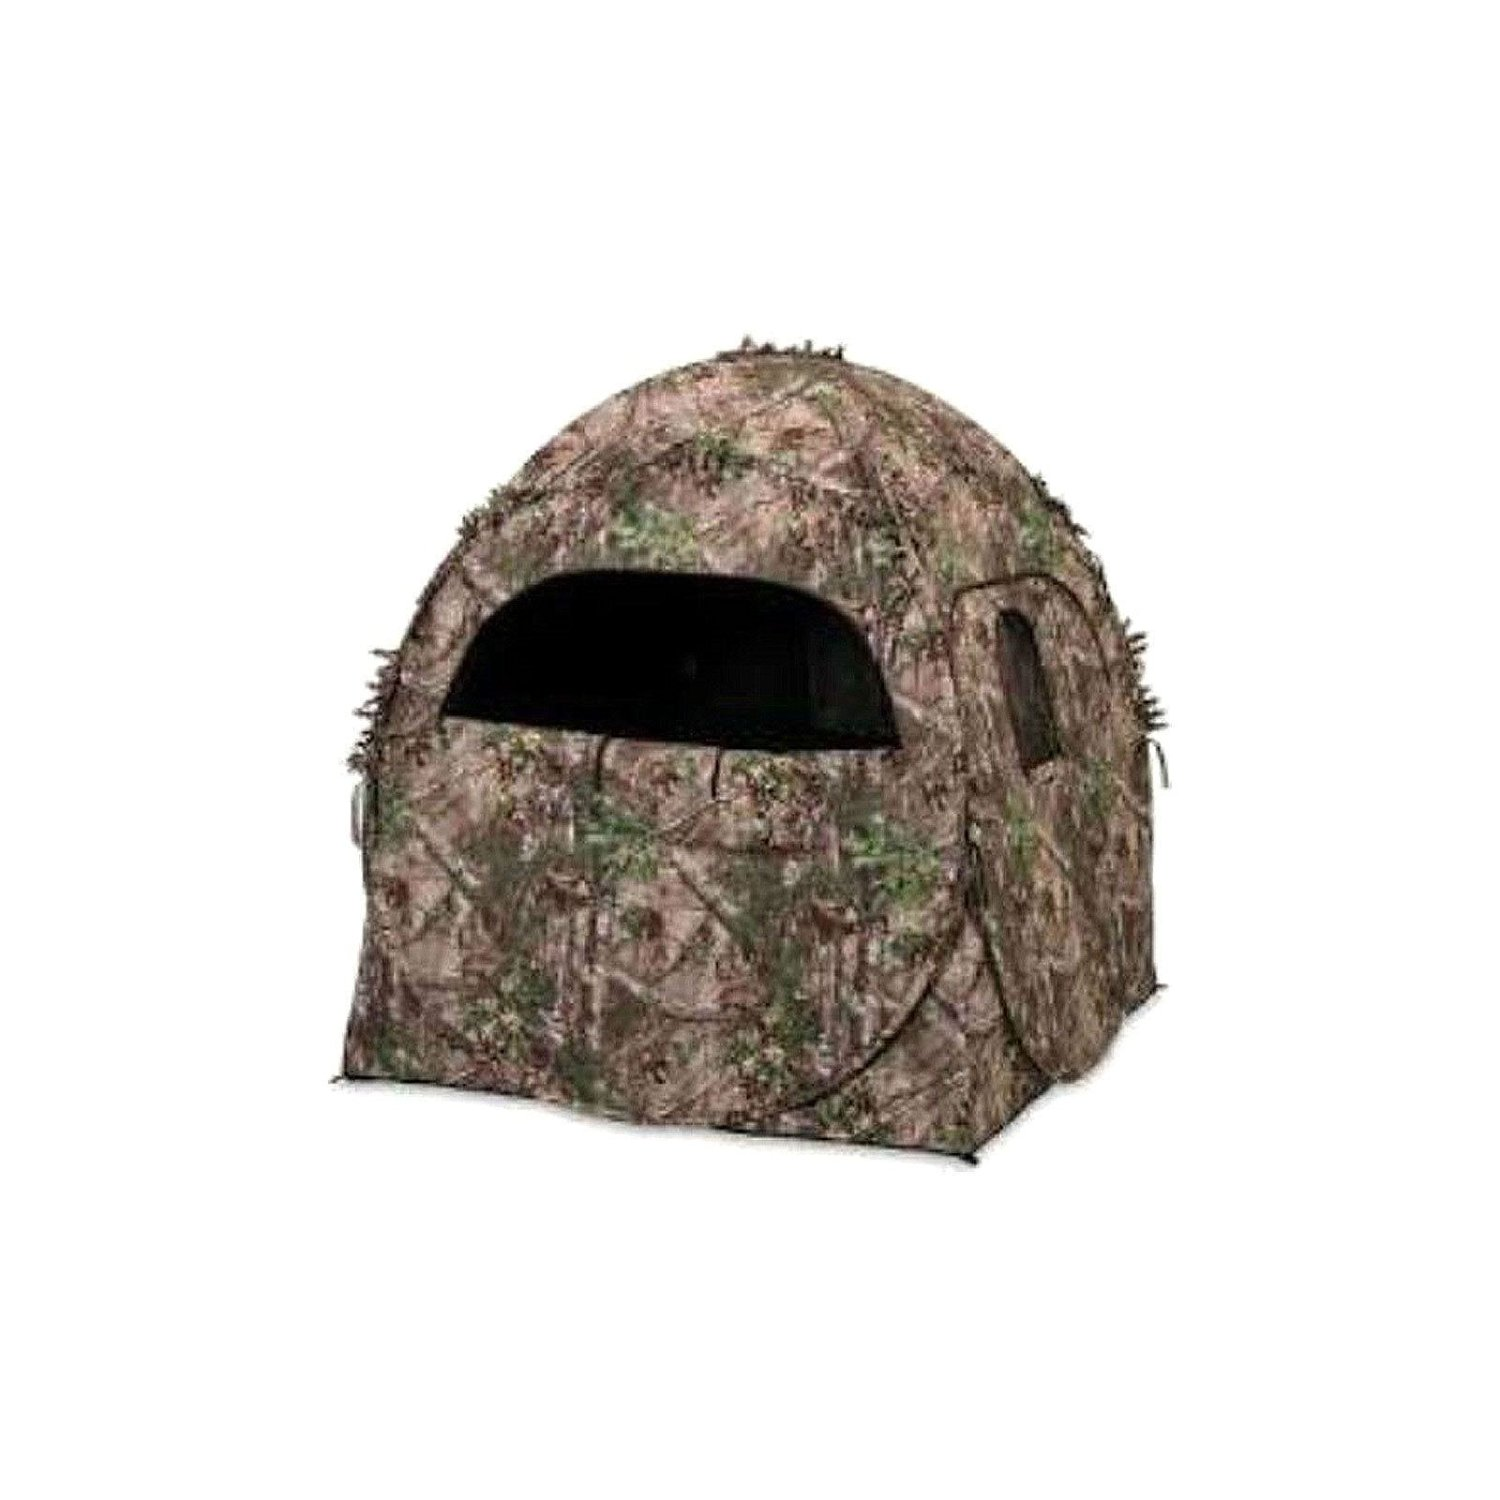 Buy Evolved Ingenuity 2103 Hunting Doghouse Ground Blind